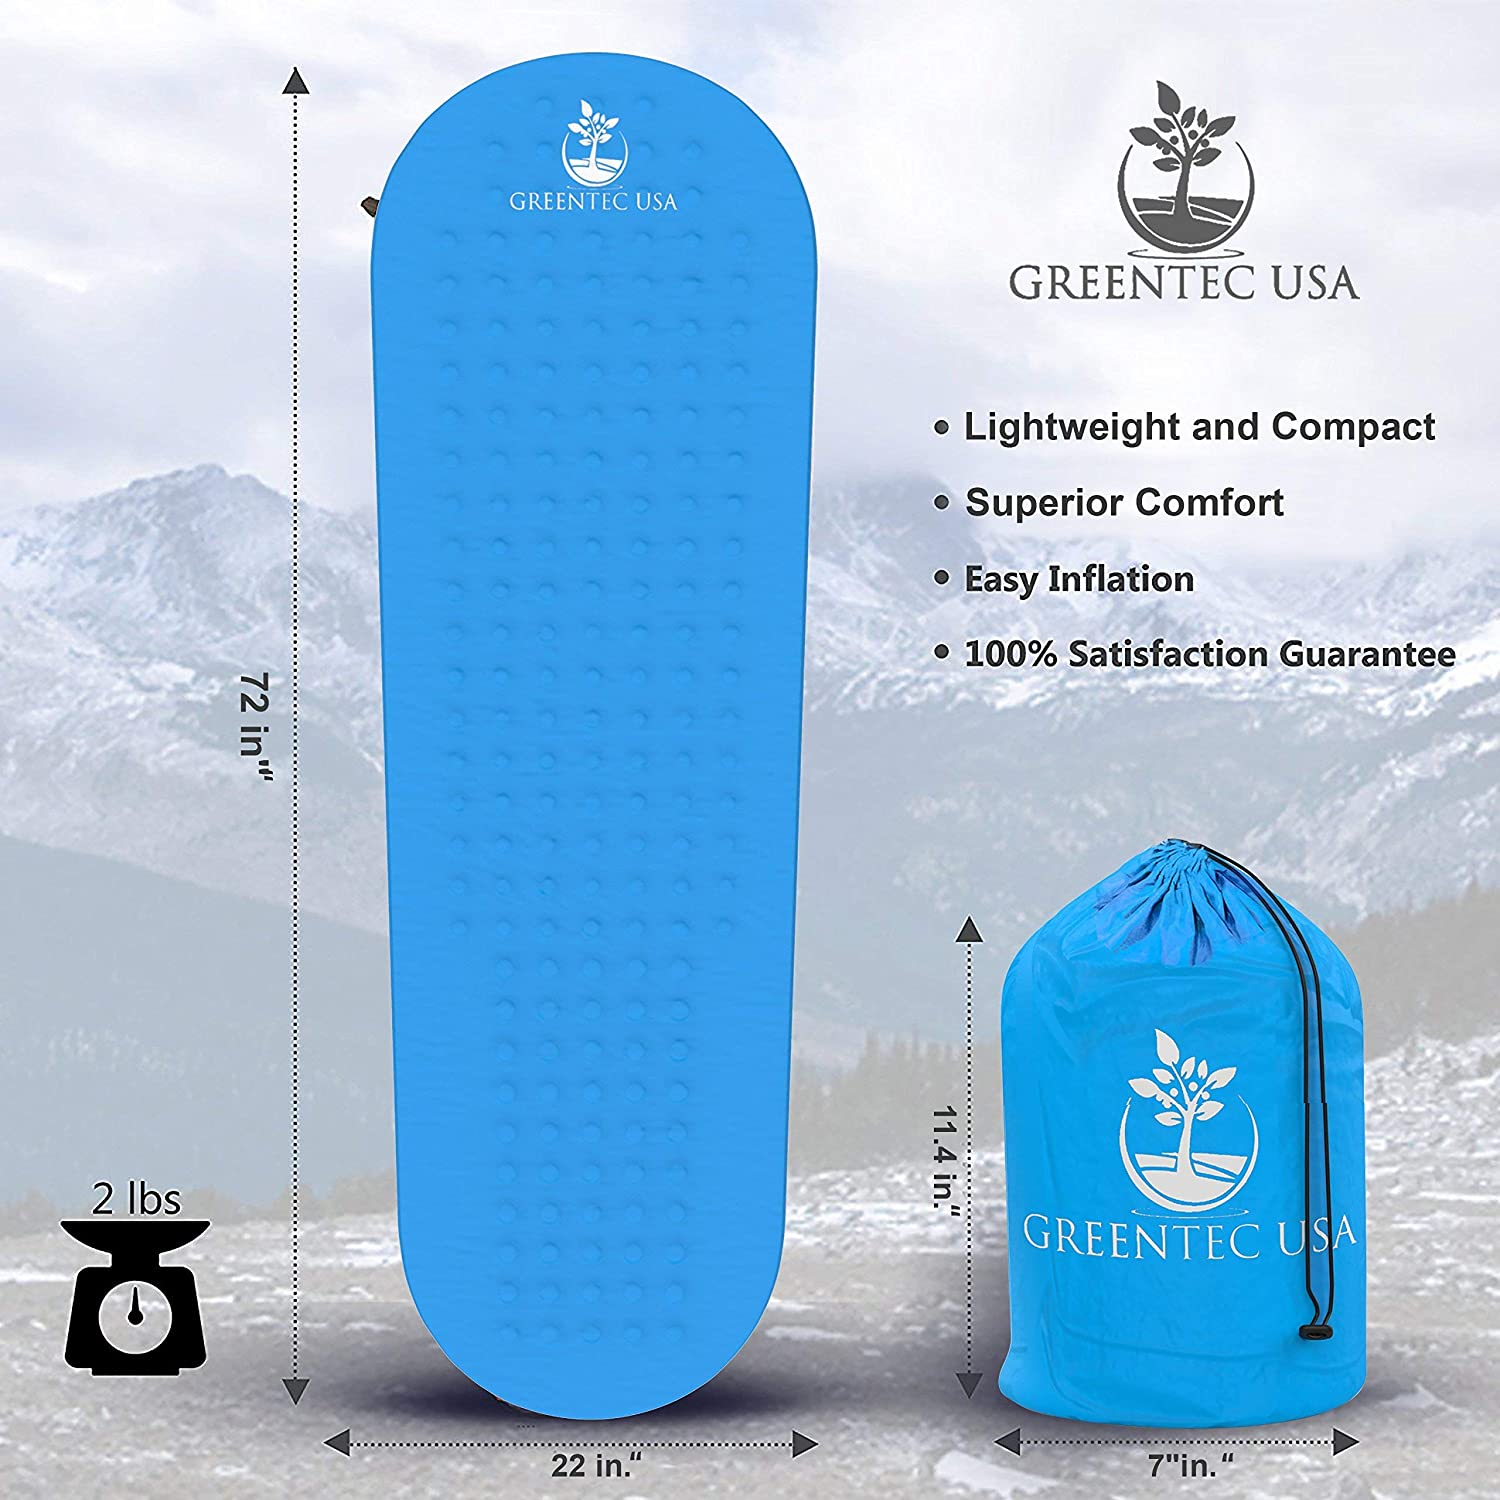 Premium Self-Inflating Sleeping Pad - Inflatable Foam Sleeping Mat for Camping, Hiking, and Traveling - Lightweight, Compact, and Durable - Works ...